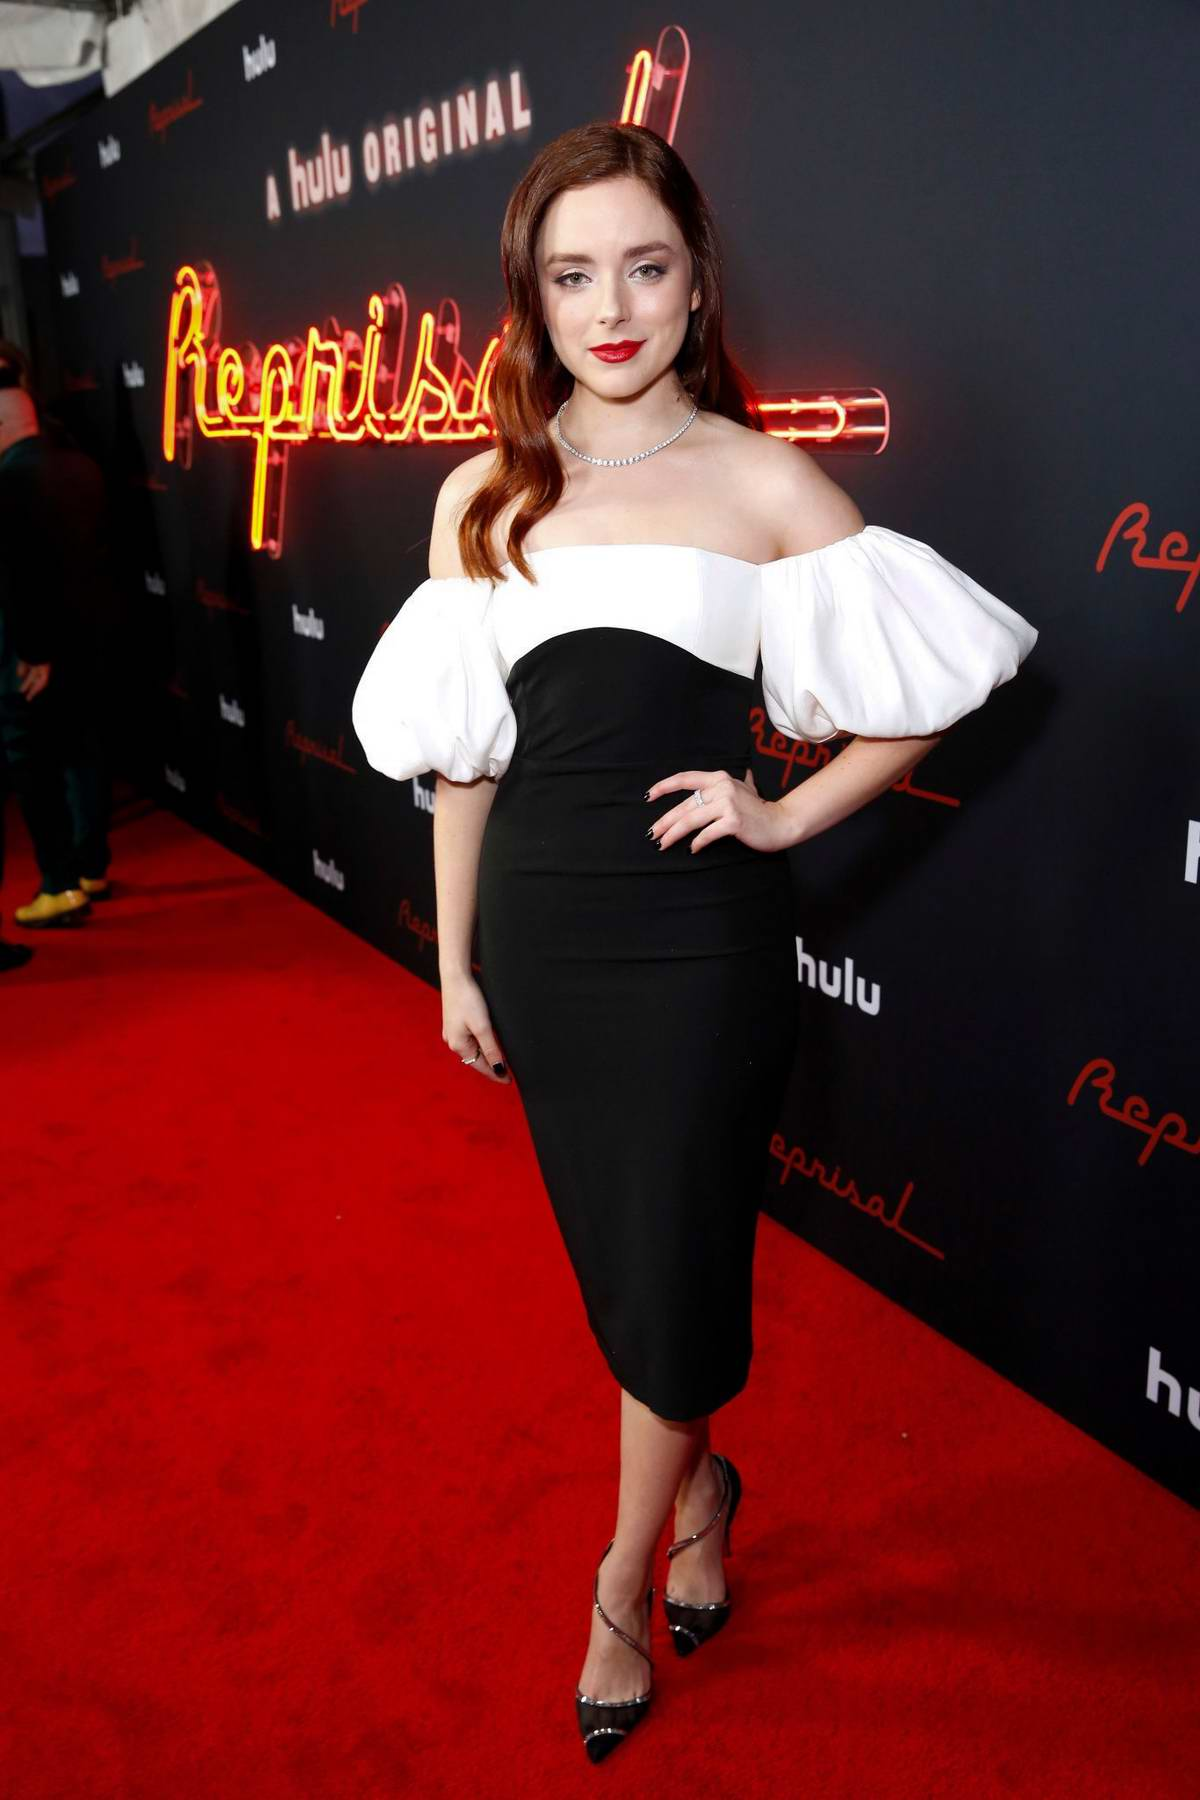 Madison Davenport attends Hulu's 'Reprisal' Season One premiere in Los Angeles